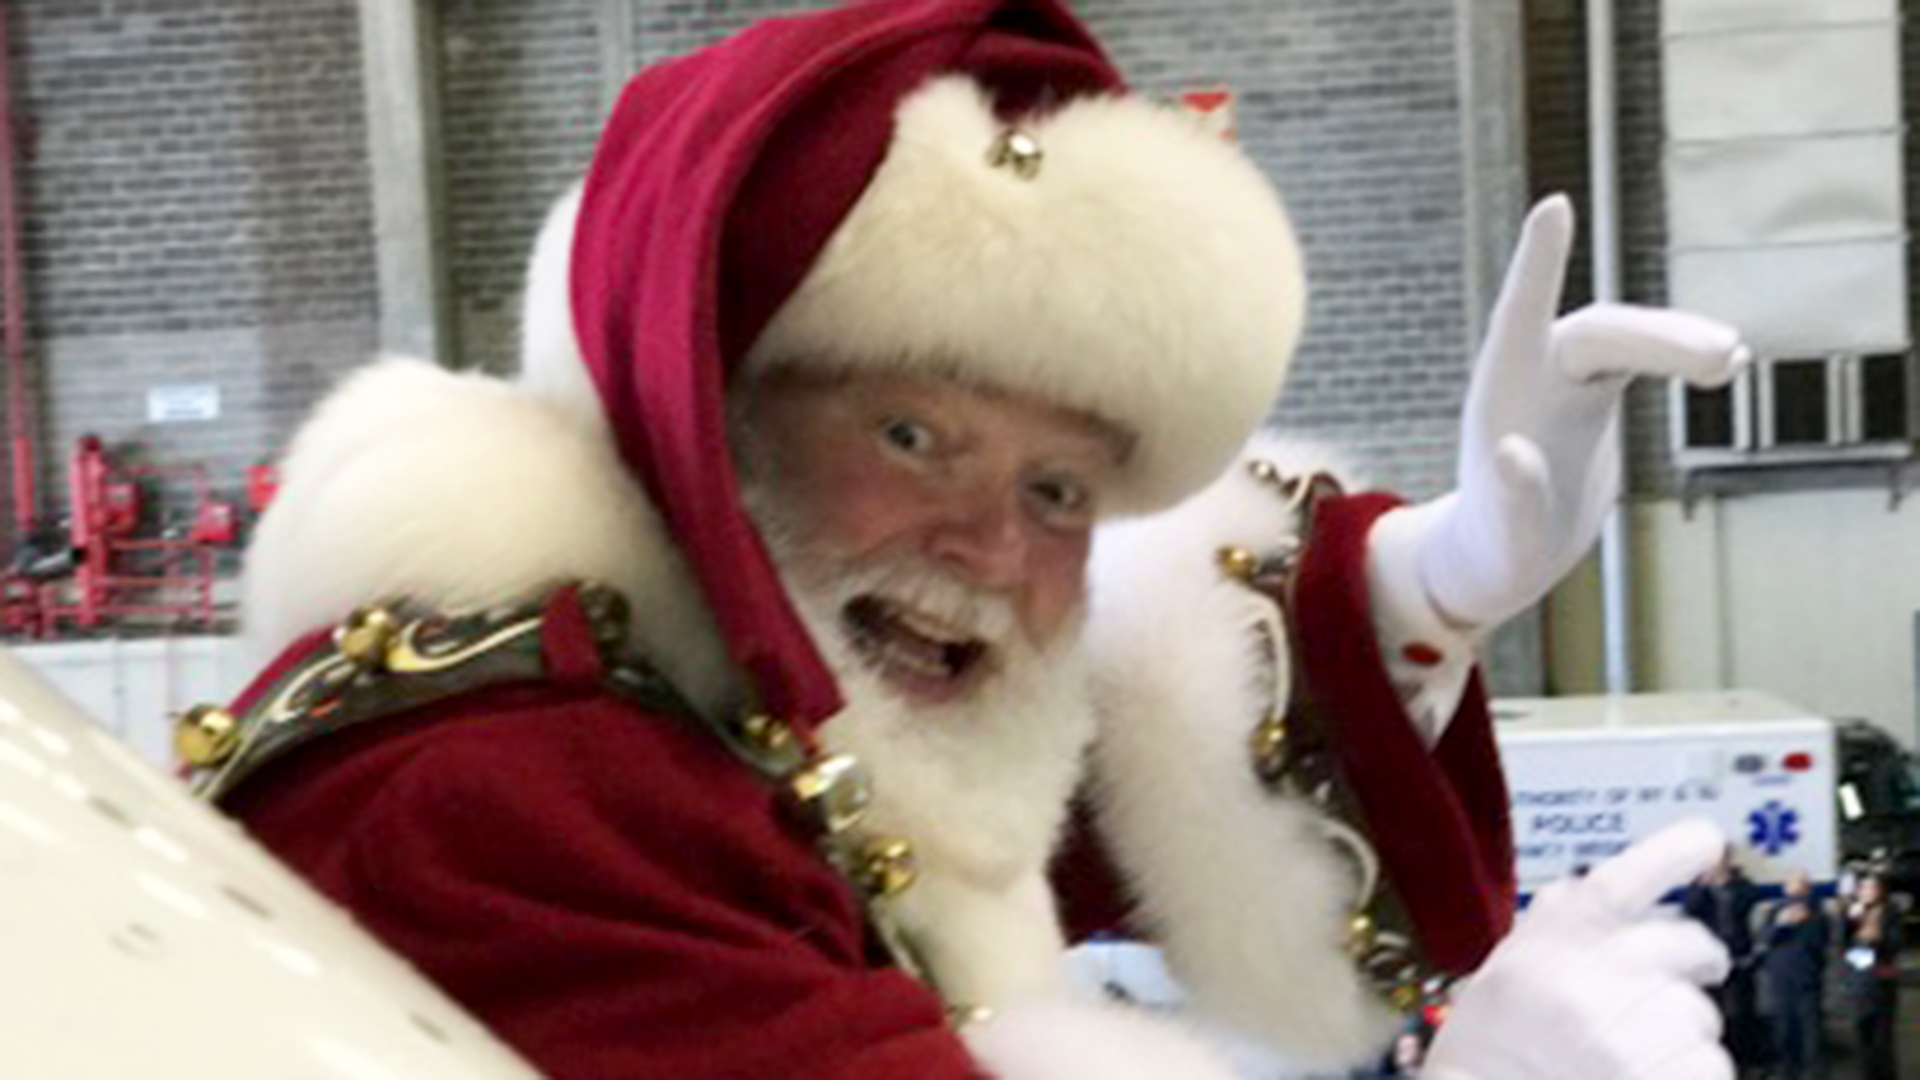 An amazing story about how I suddenly became Santa Claus and fulfilled the most important childhood dream